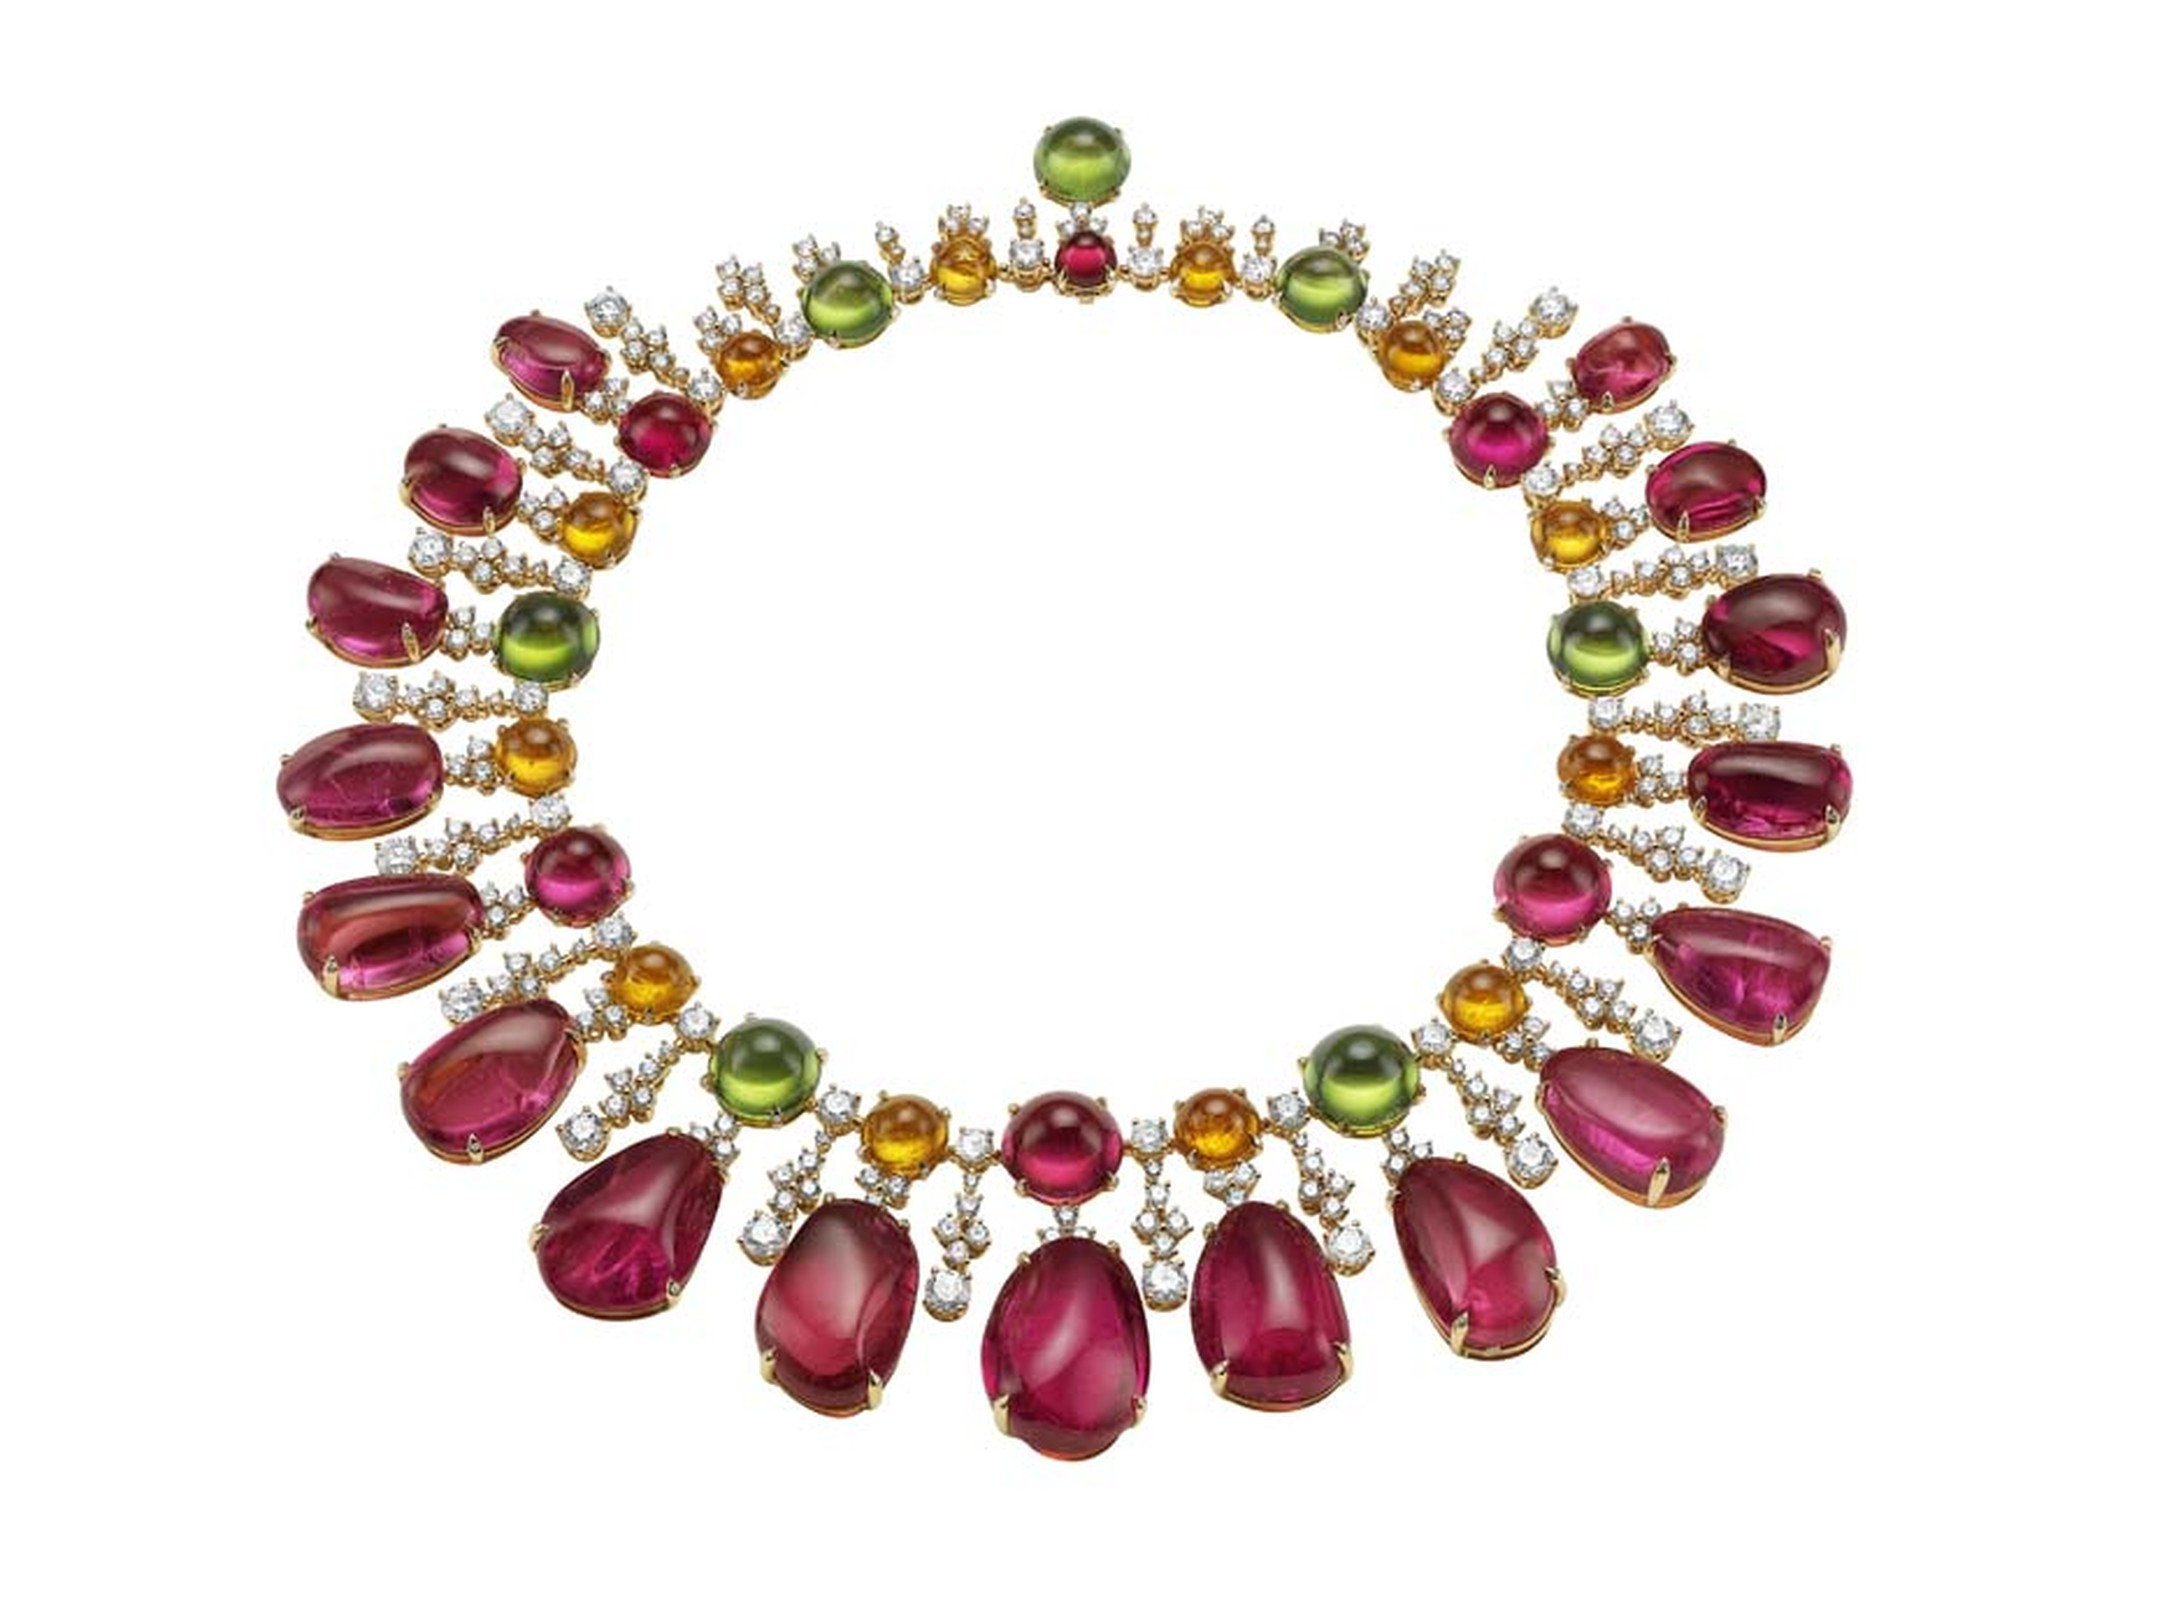 Bulgari Diva Gala in Costa Smeralda necklace set with 18 rubellites totalling more than 420ct